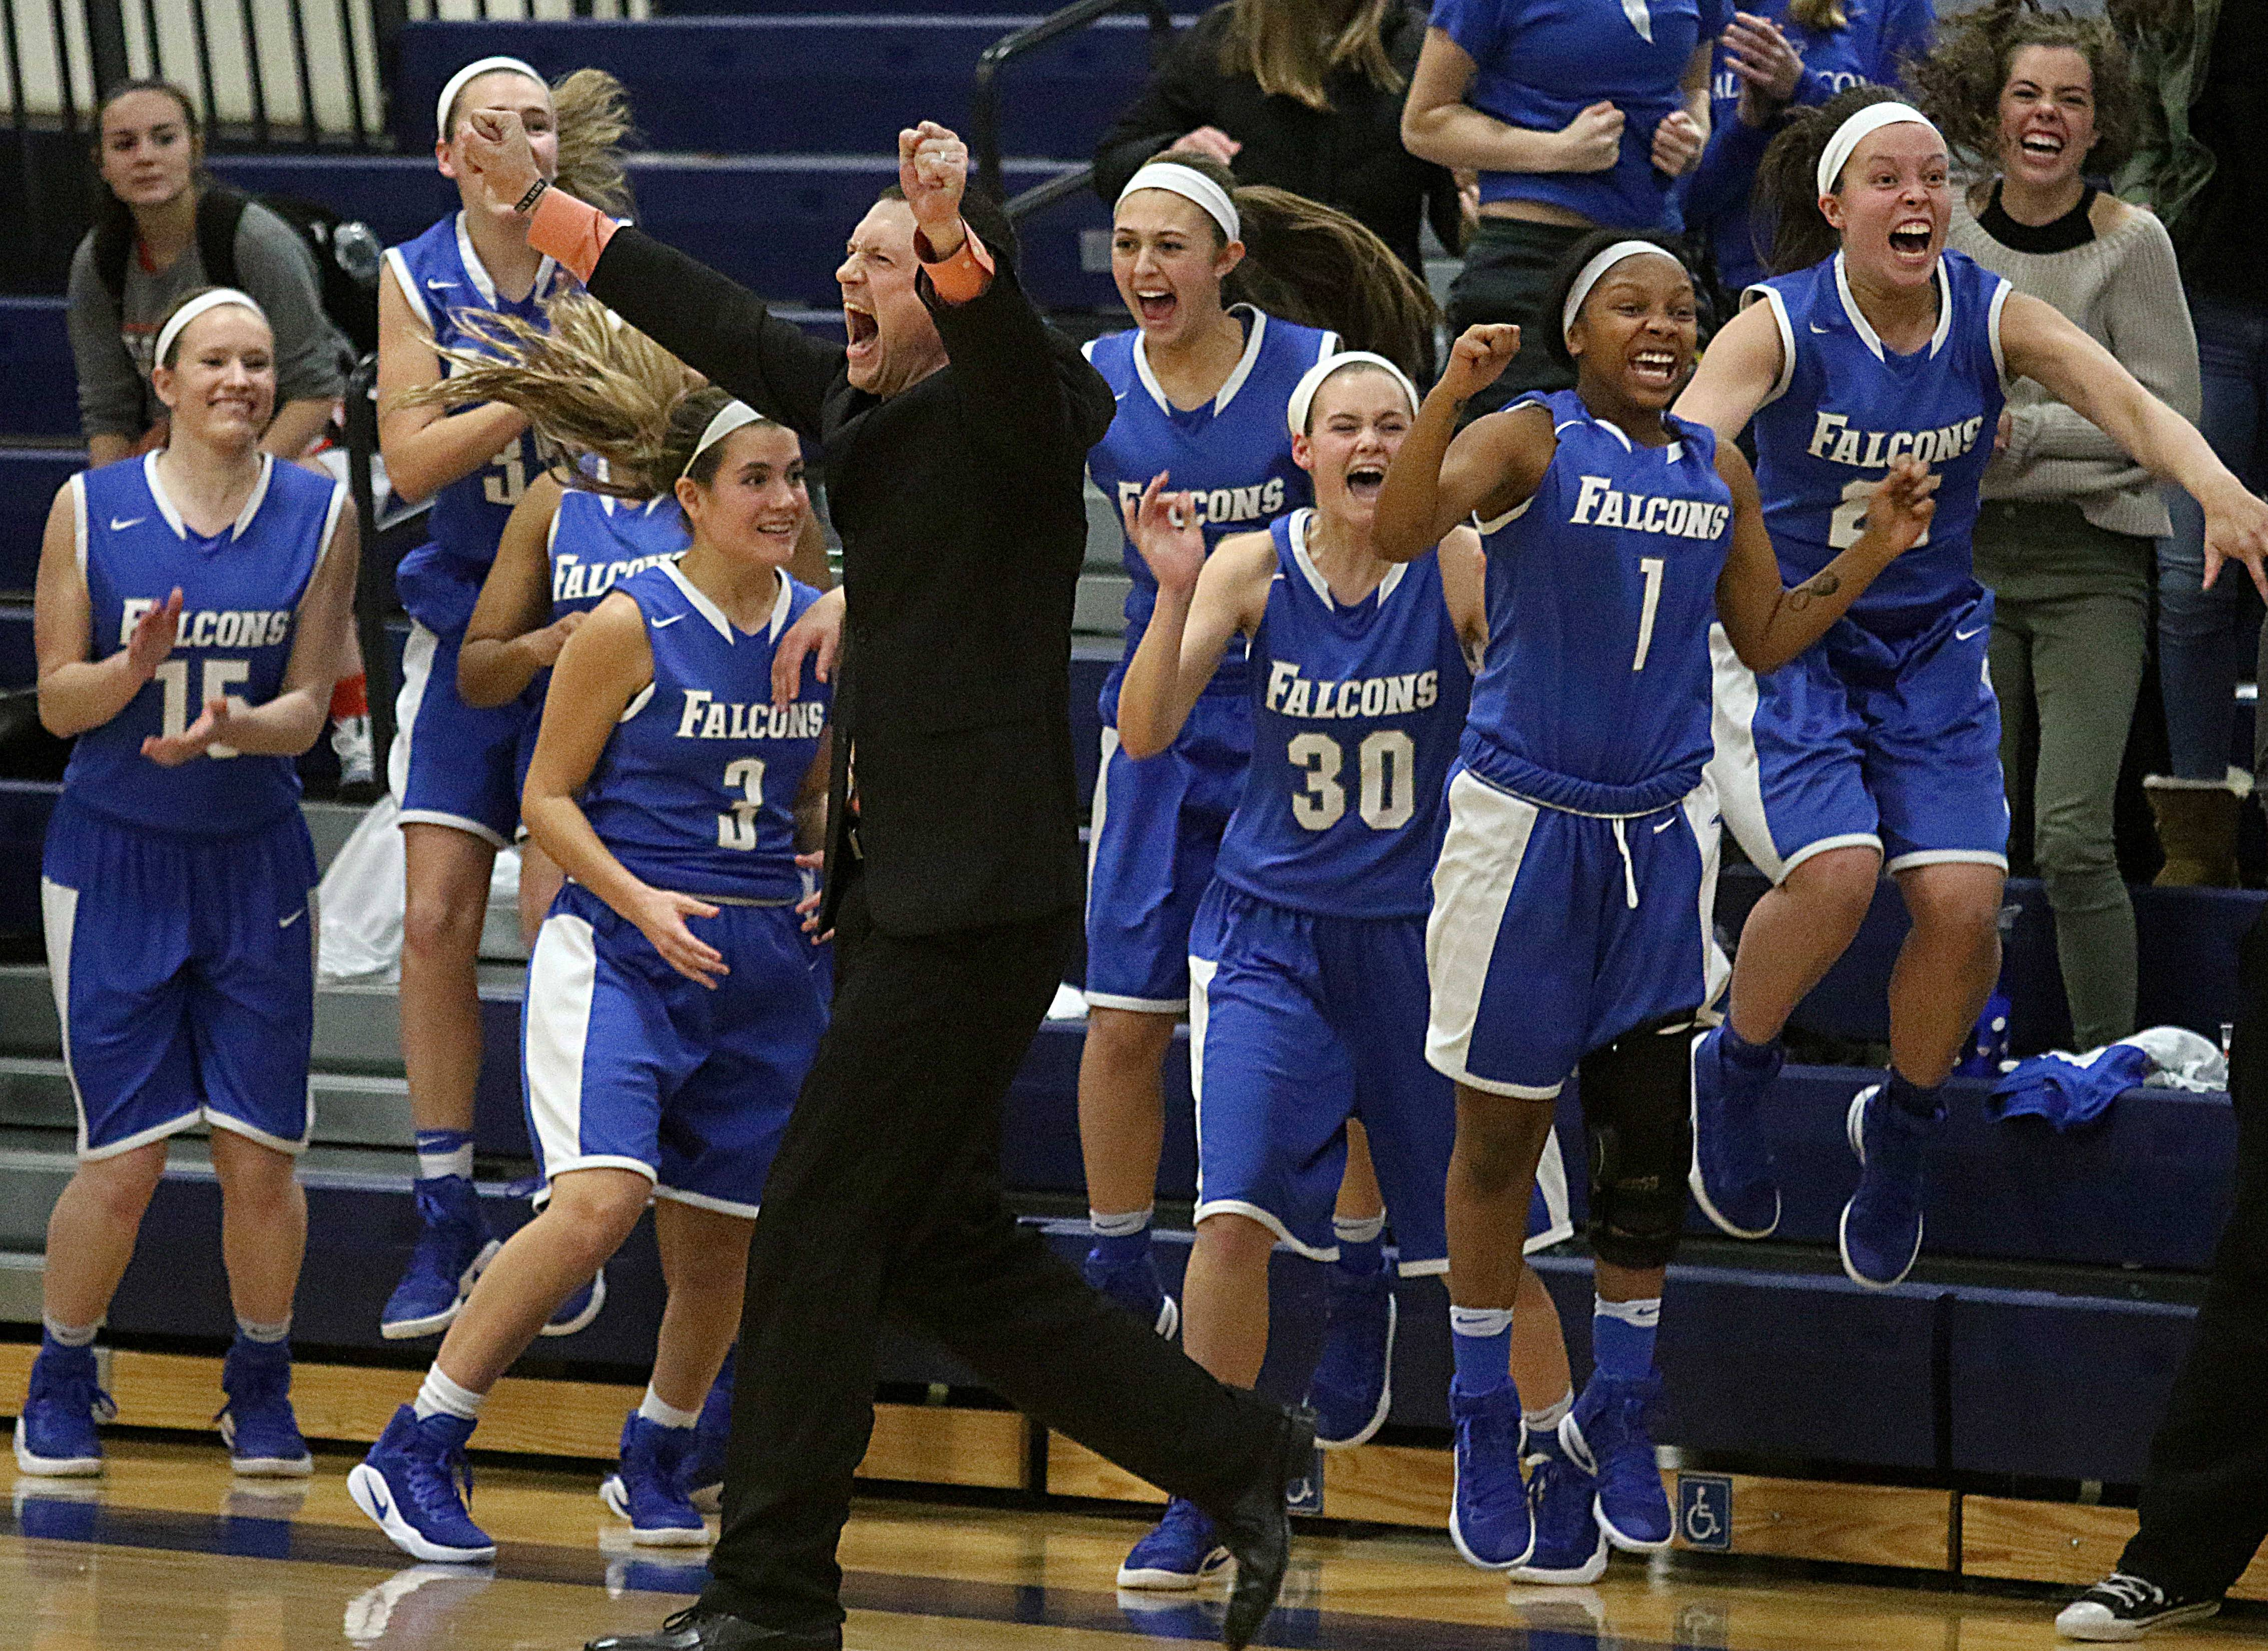 Wheaton North players, coaches and fans react as the Falcons win in overtime over Lyons Township in a semifinal of the 33rd annual Bill Neibch Falcon Classic tournament at Wheaton North Wednesday night.